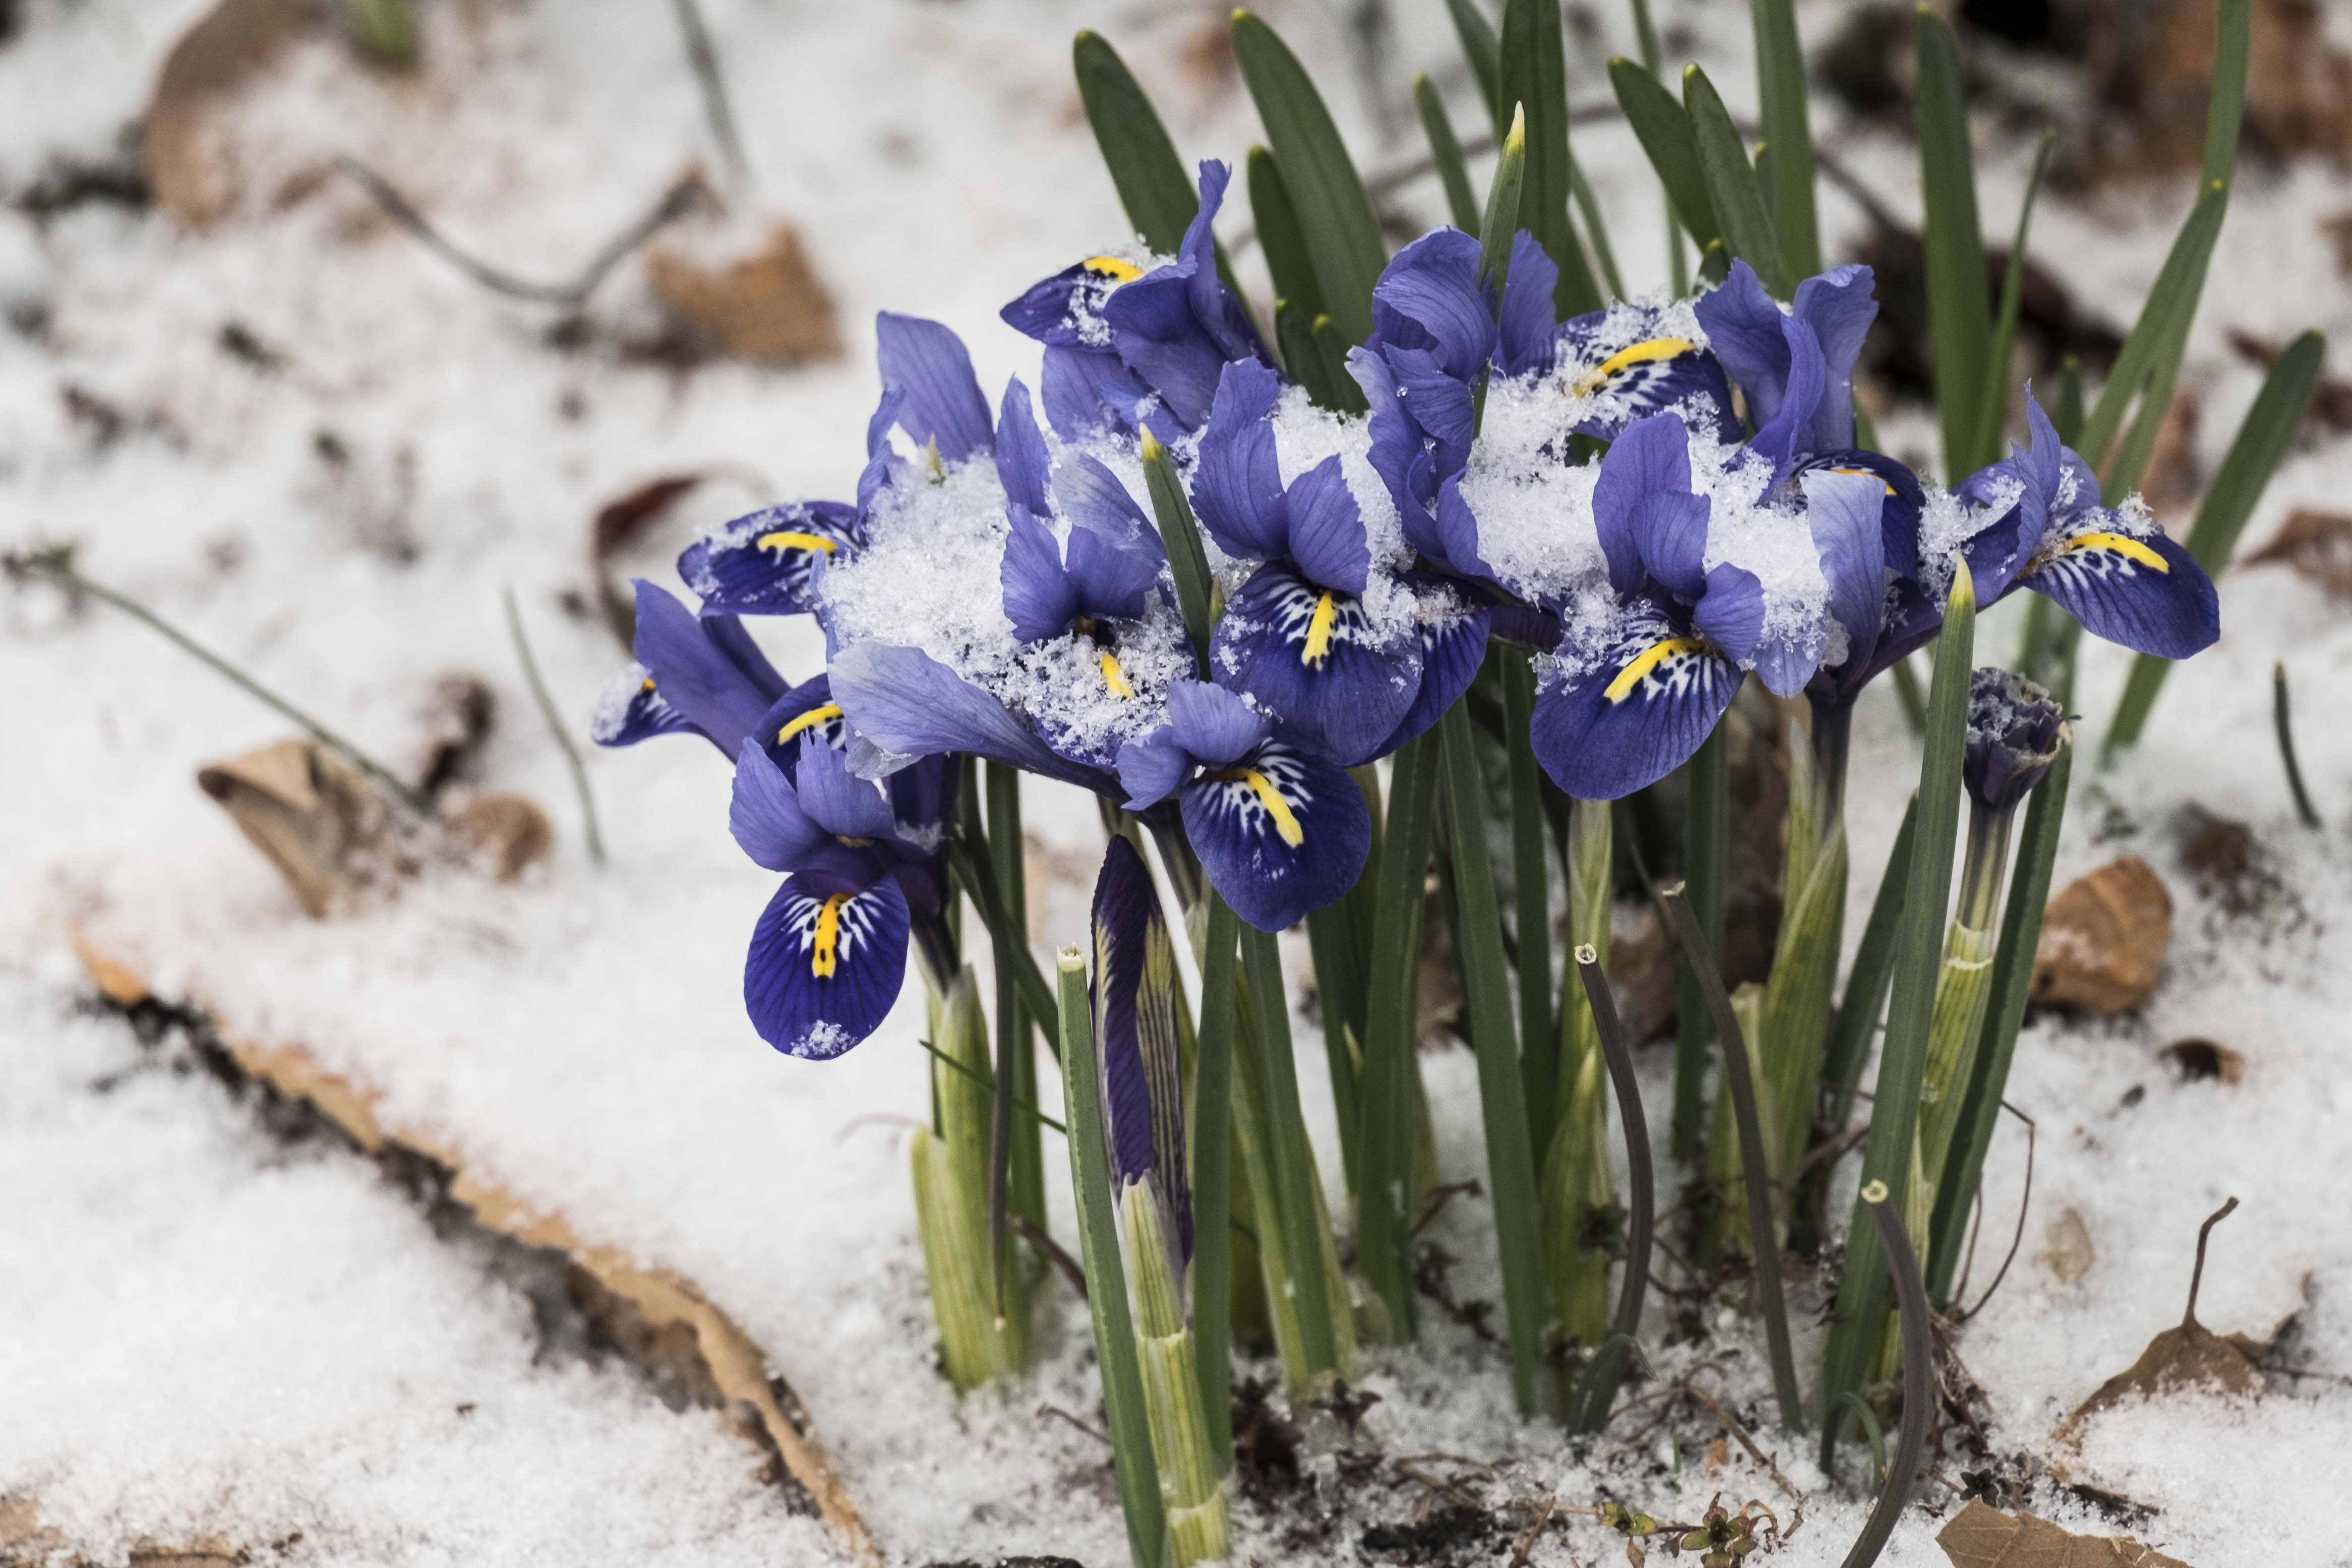 Sure it's snowing but… flowers!